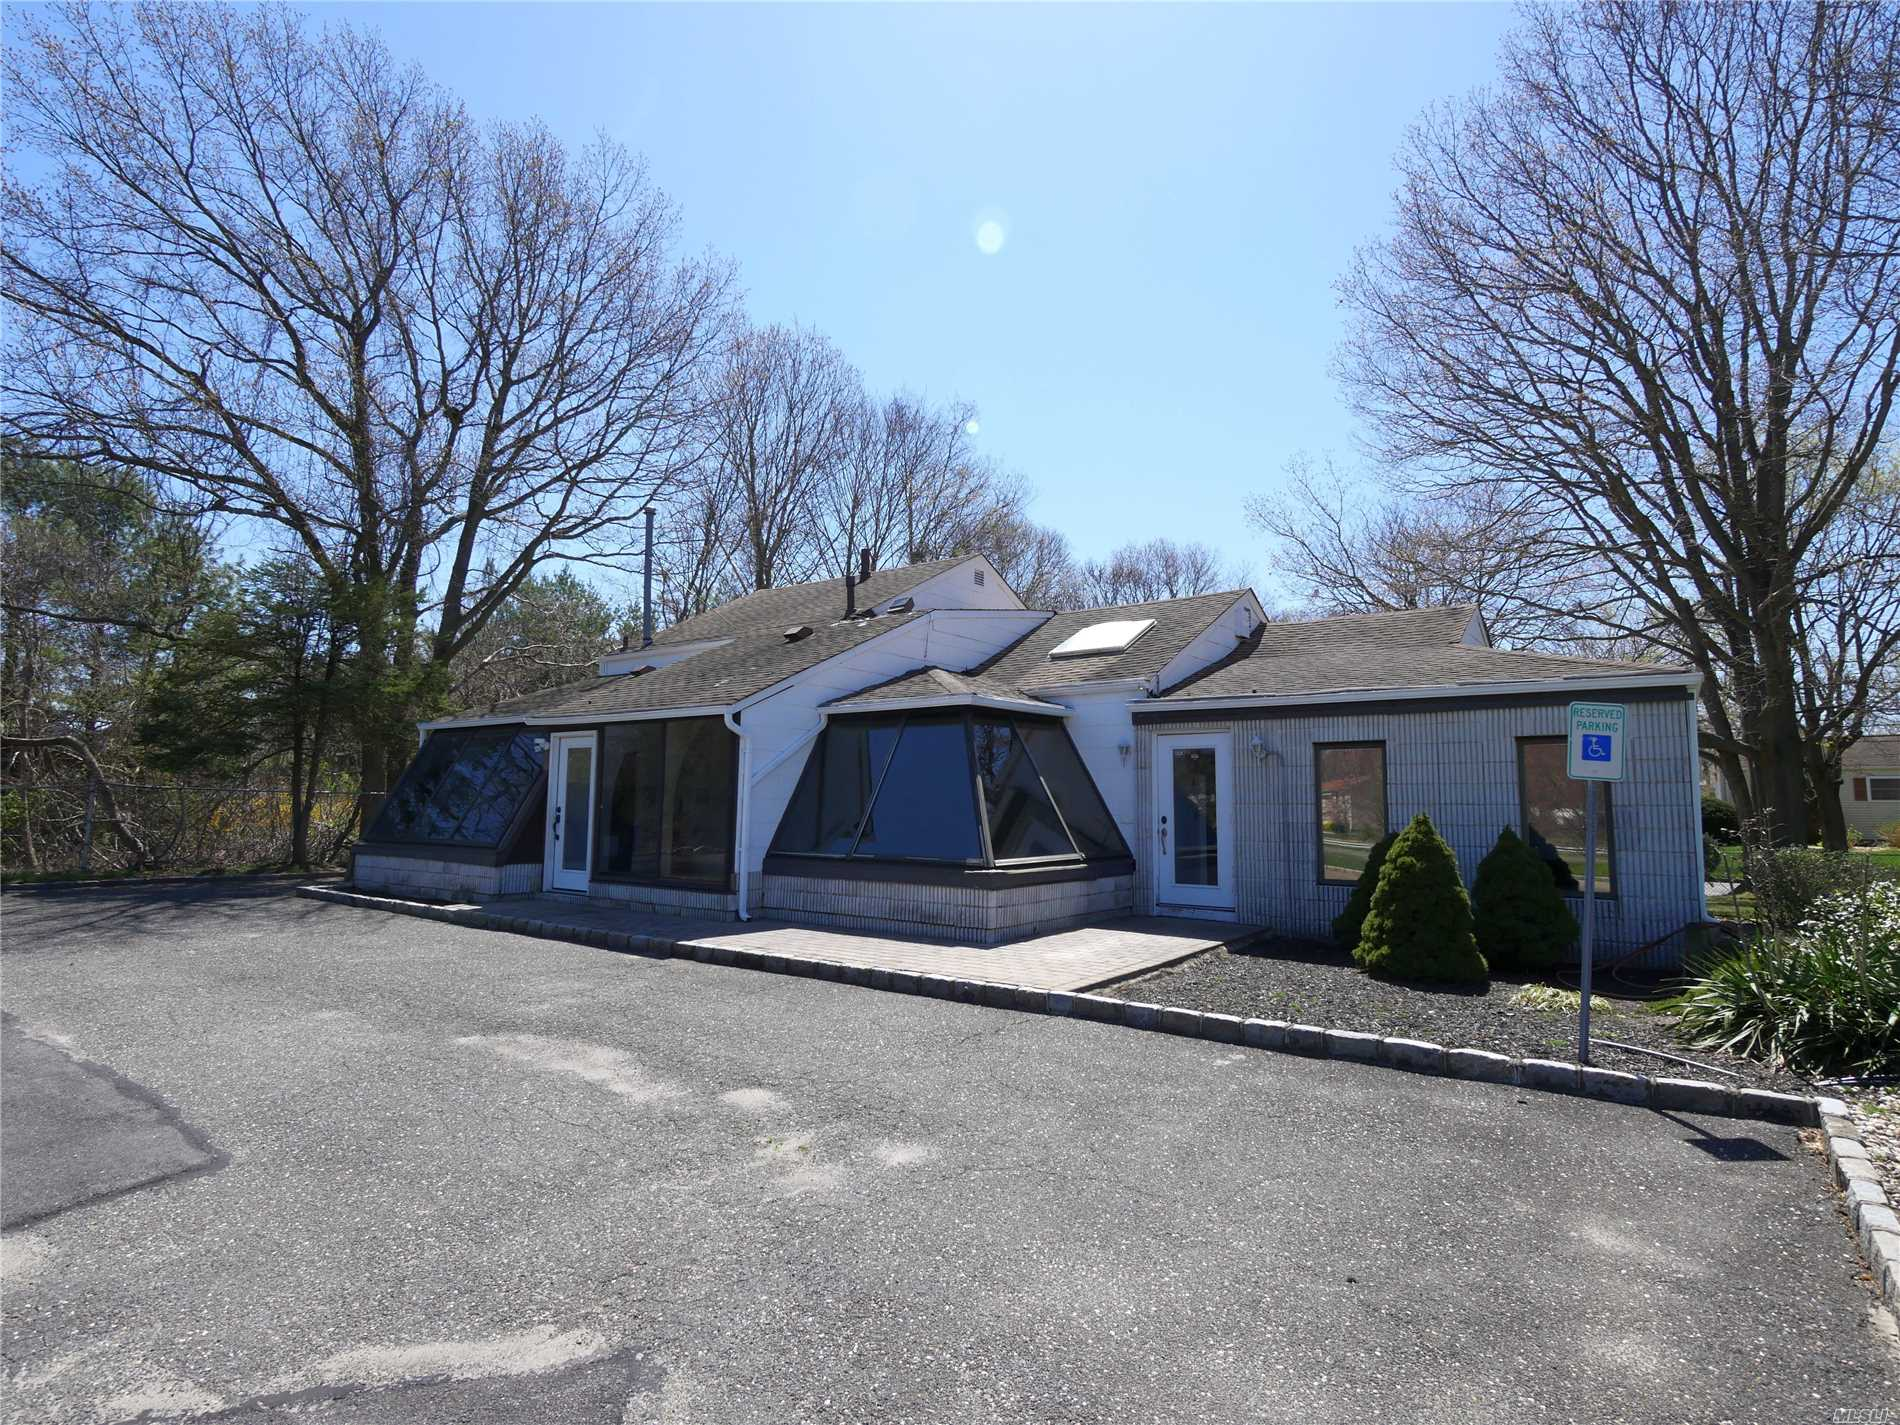 Photo of home for sale at 4515 Nesconset Hwy, Pt.Jefferson Sta NY